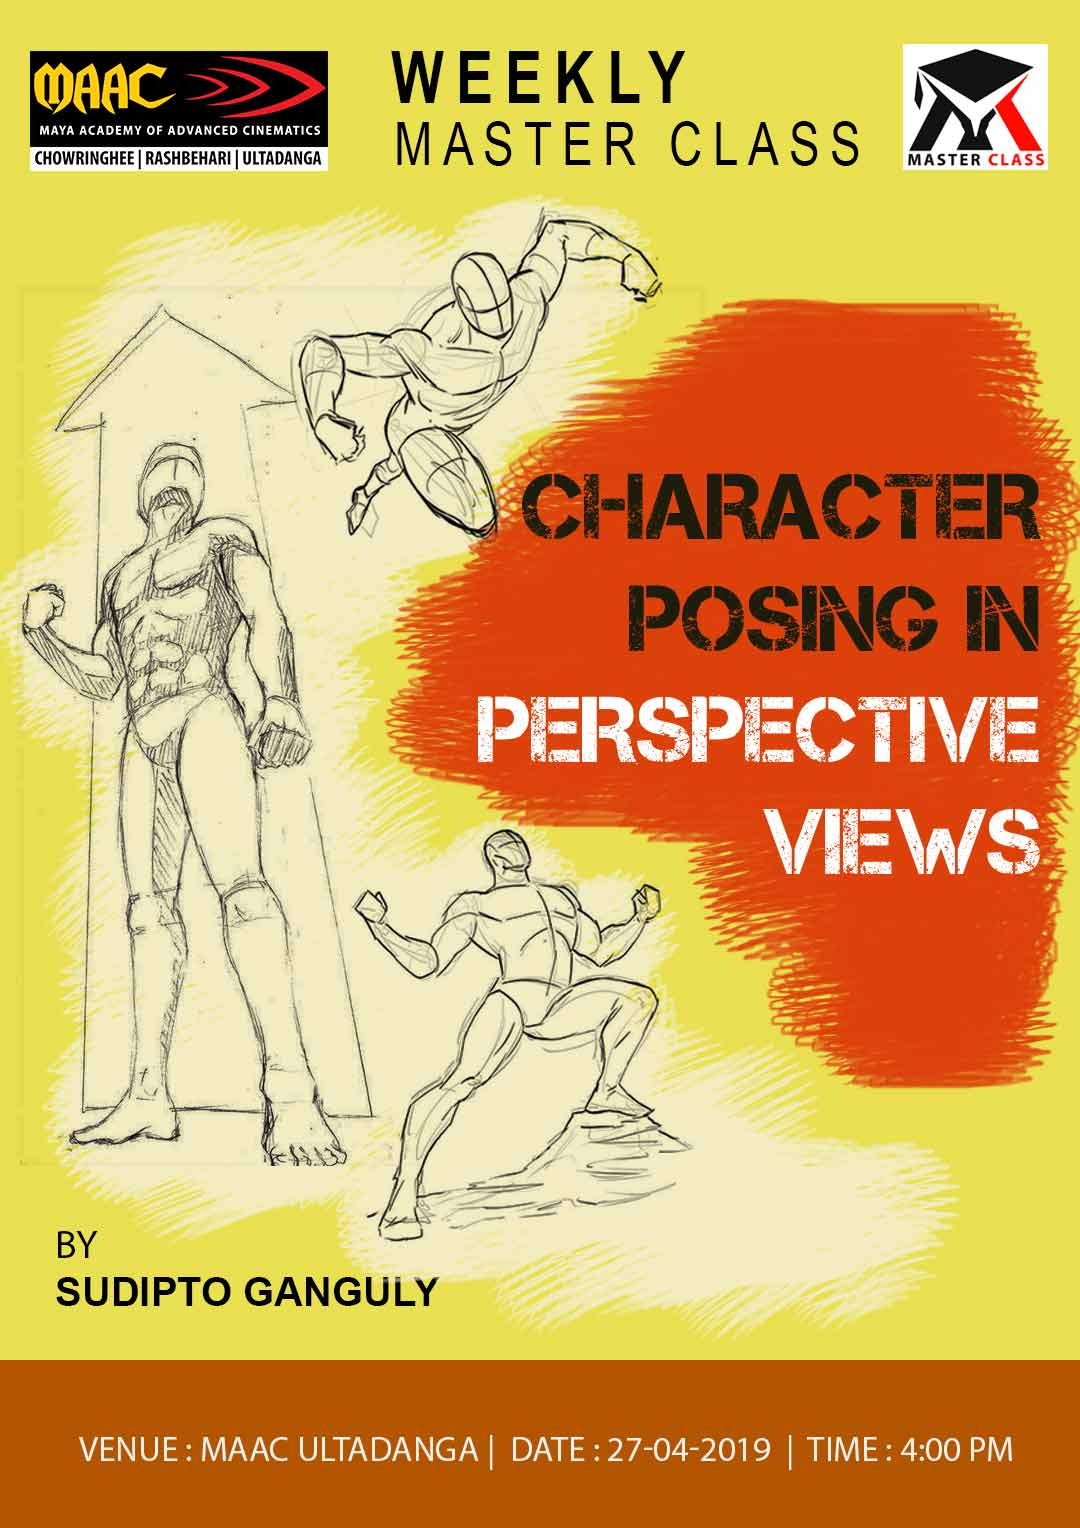 Weekly Master Class on Character Posing in Perspective views